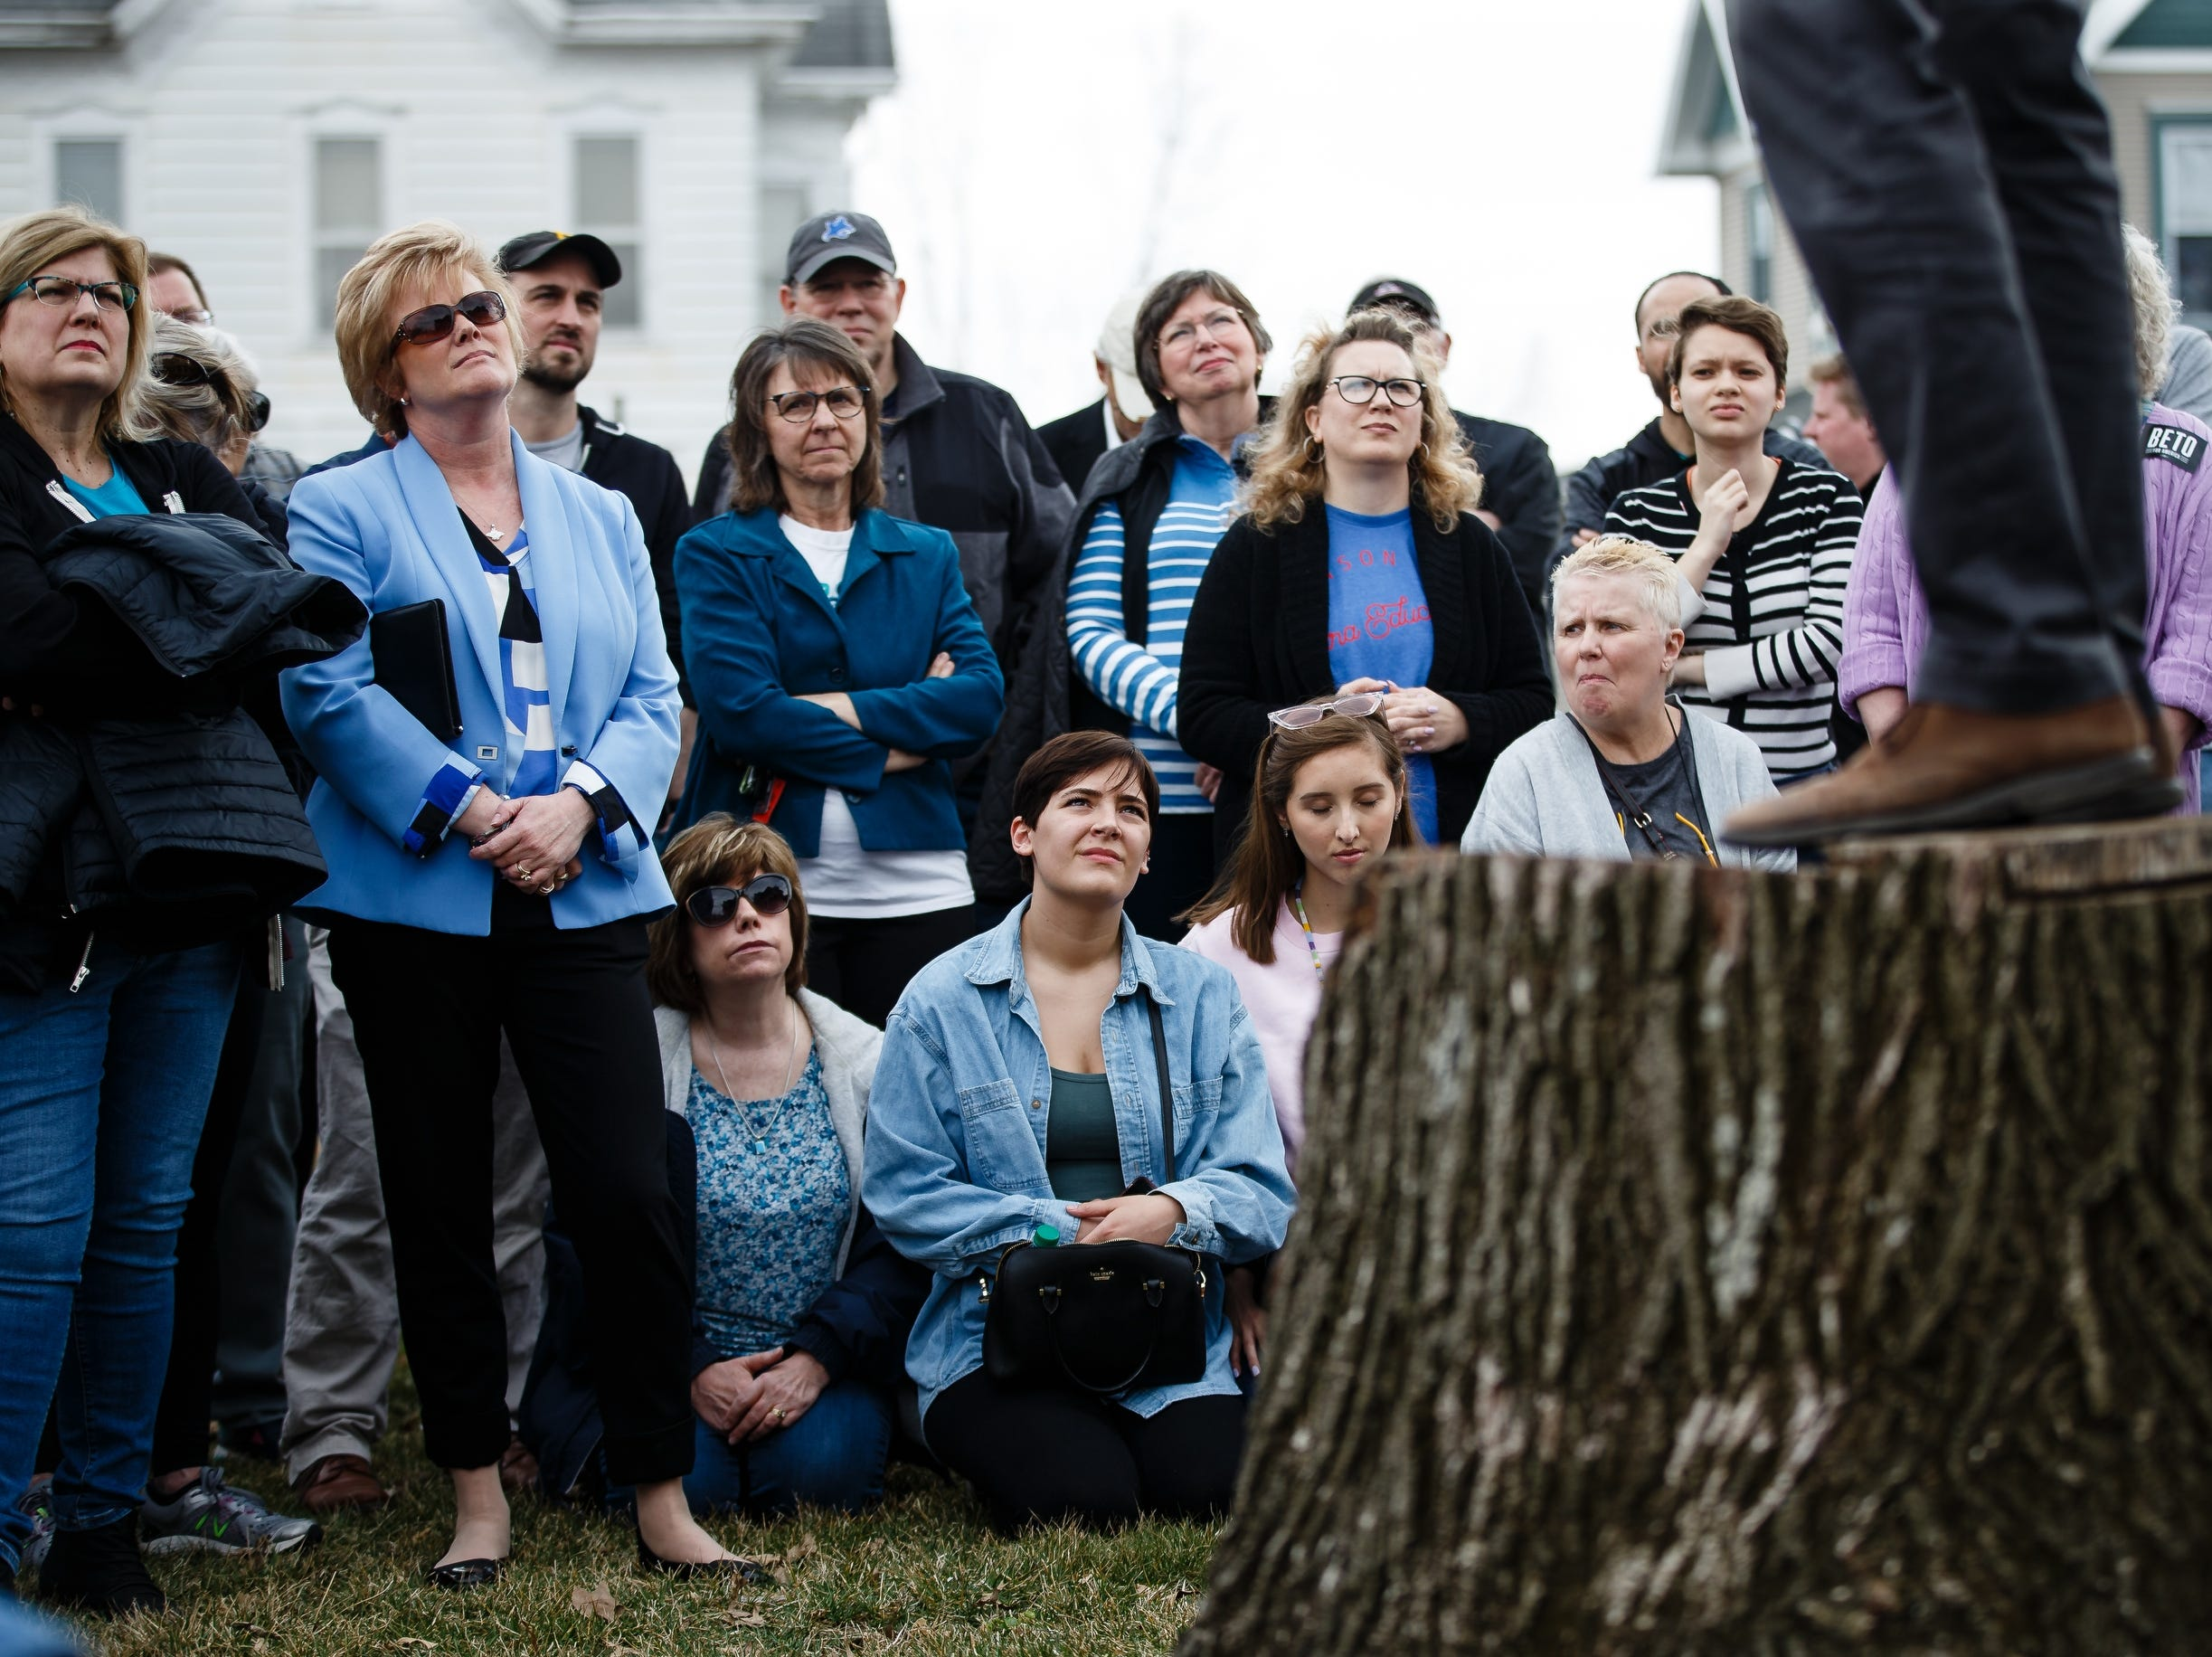 People listen as 2020 Democratic presidential candidate and former Texas Representative Beto O'Rourke stands onto a stump to give his speech in Marshalltown at the Mowry Irvine Mansion during a swing though Iowa on Friday, April 5, 2019, in Marshalltown.